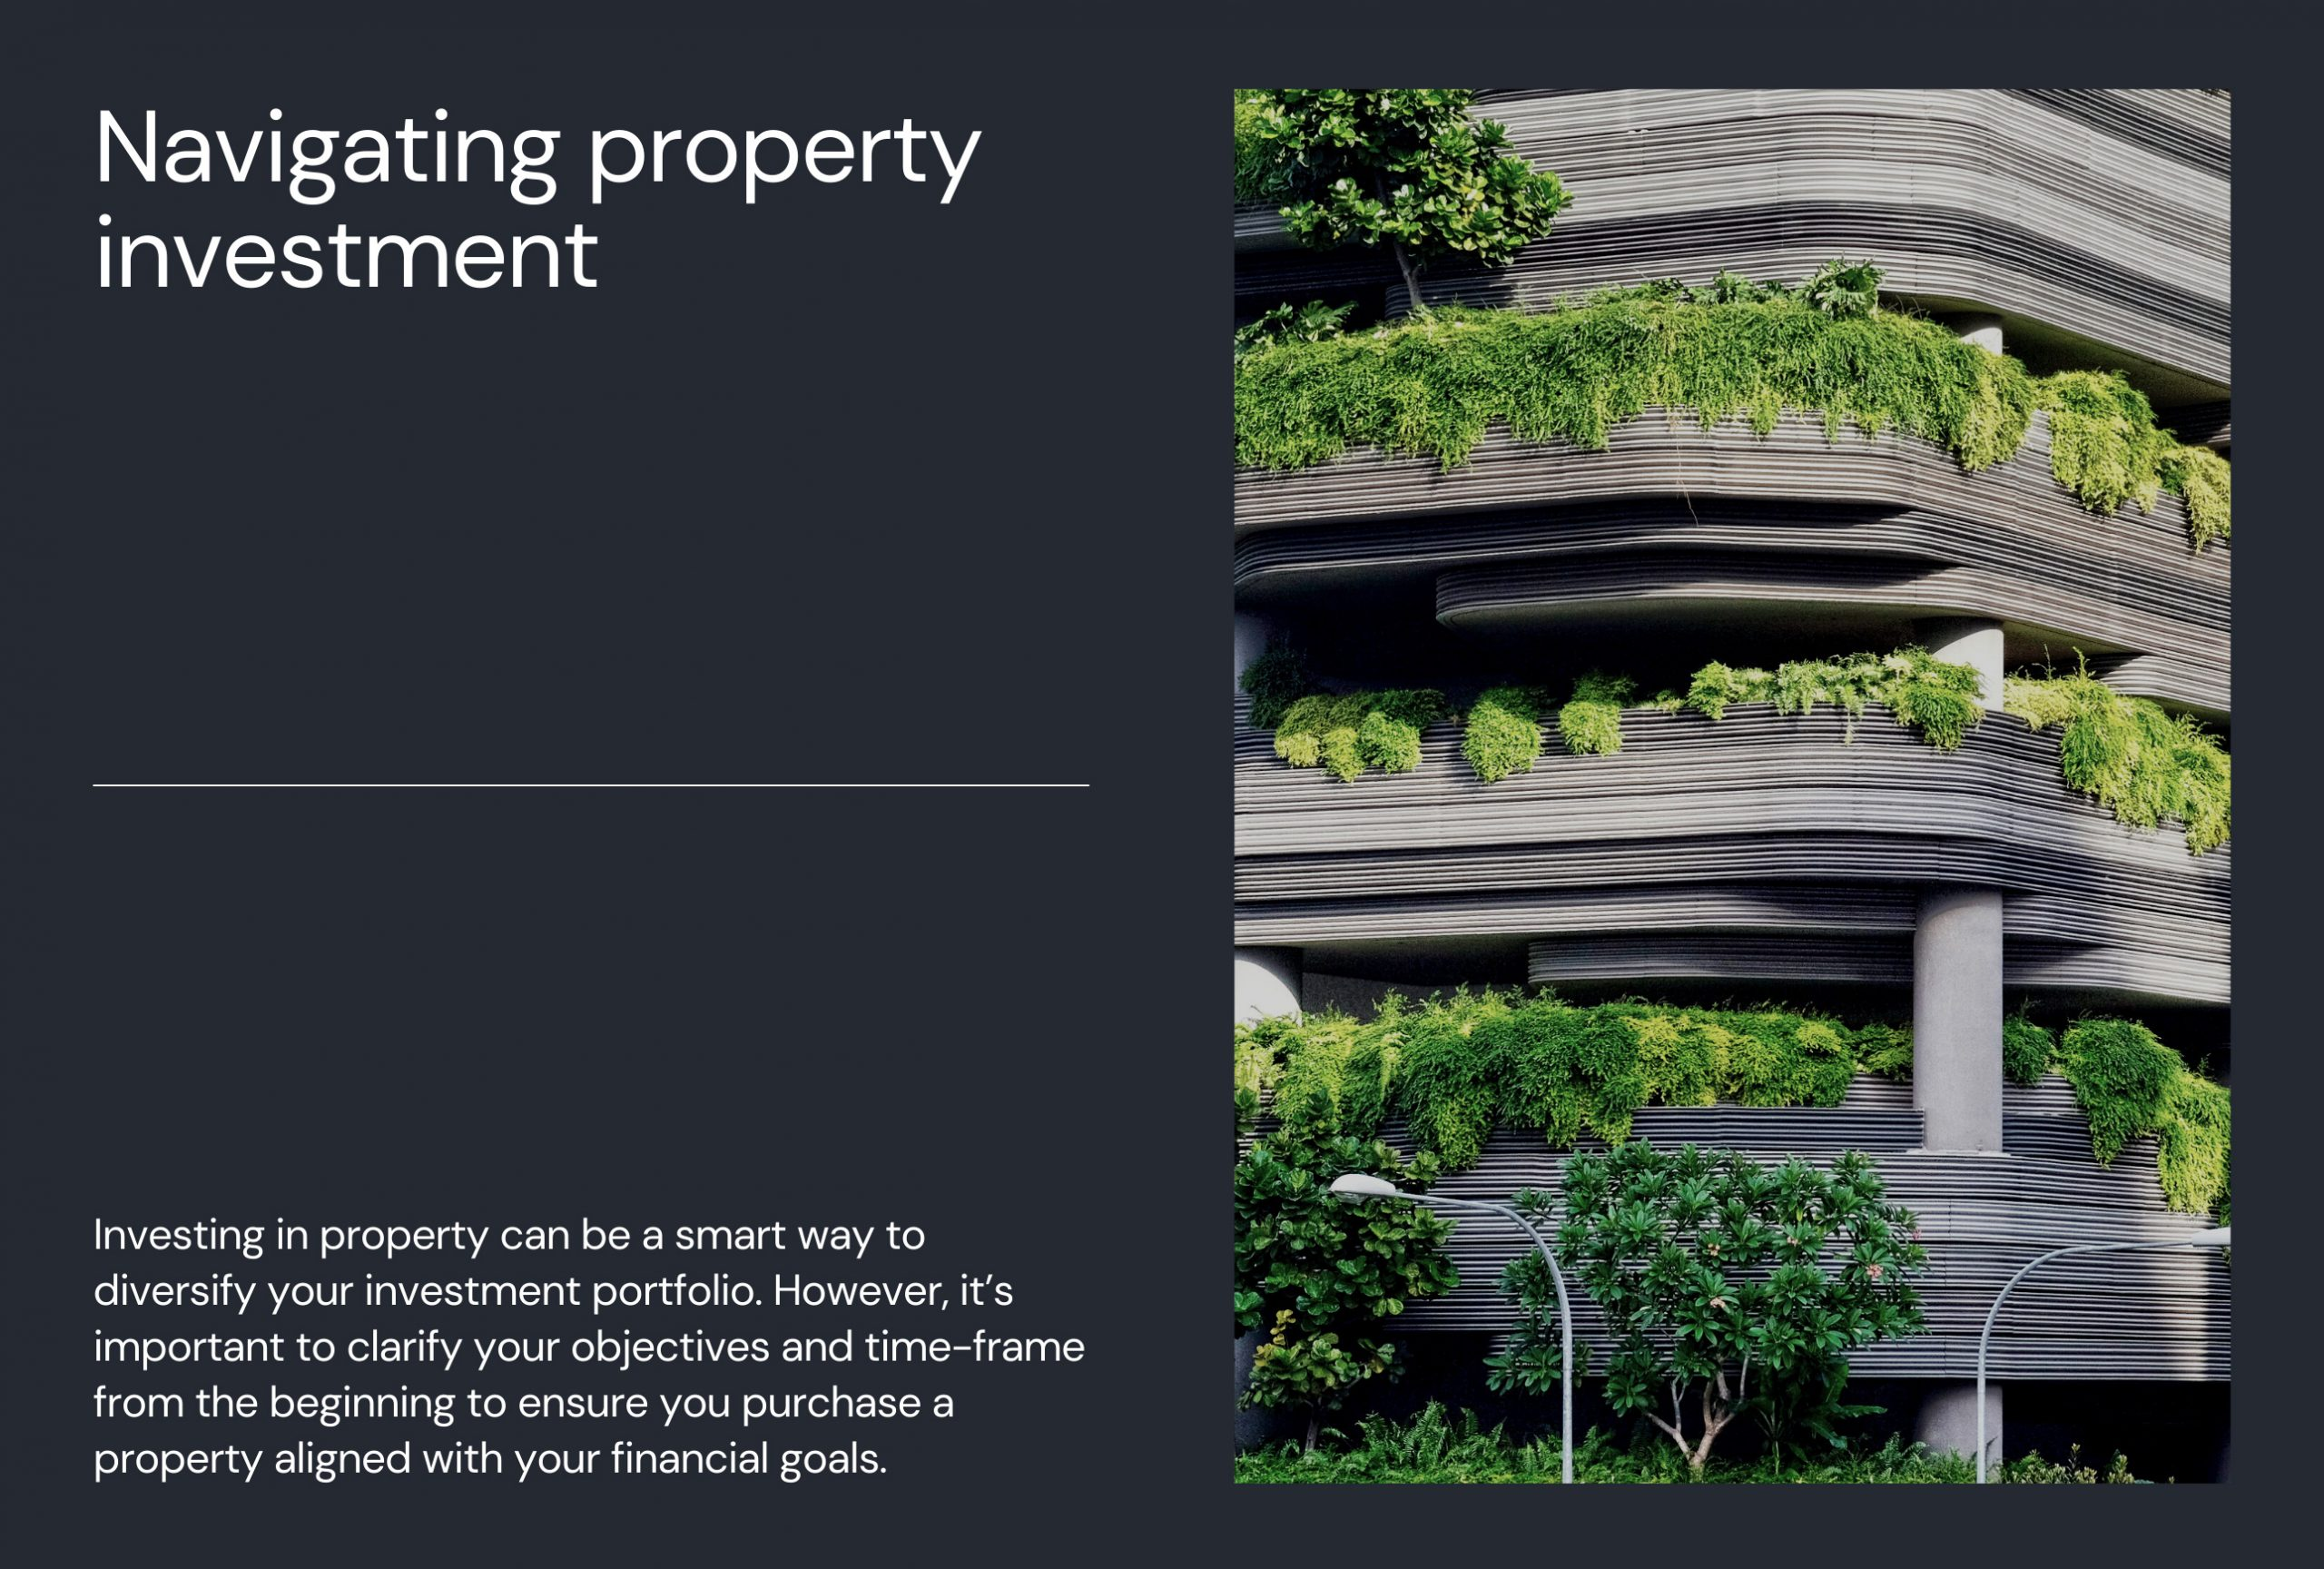 Buying an investment property? Here's what to consider